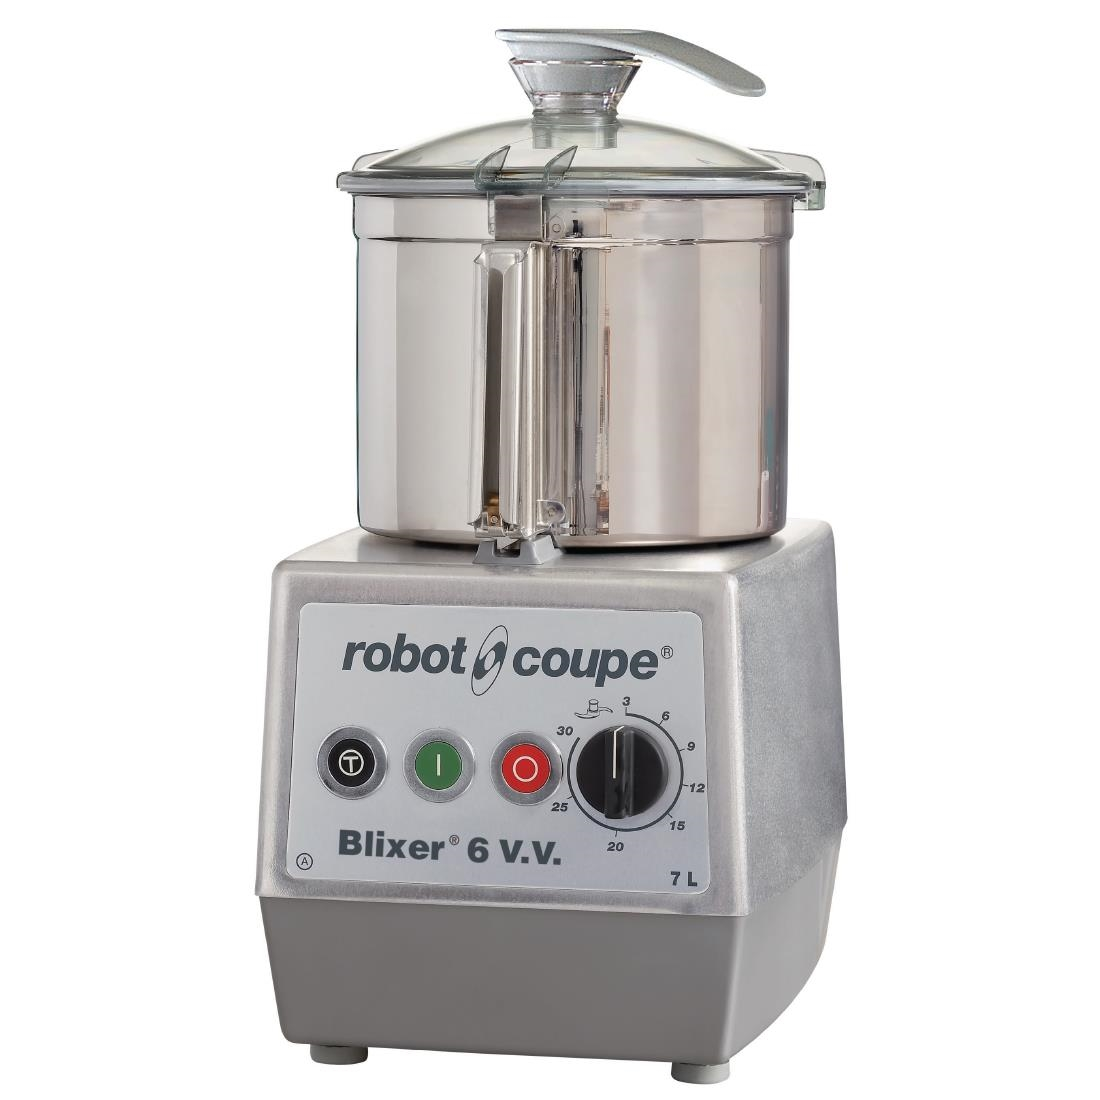 Image of Robot Coupe Blixer 6VV